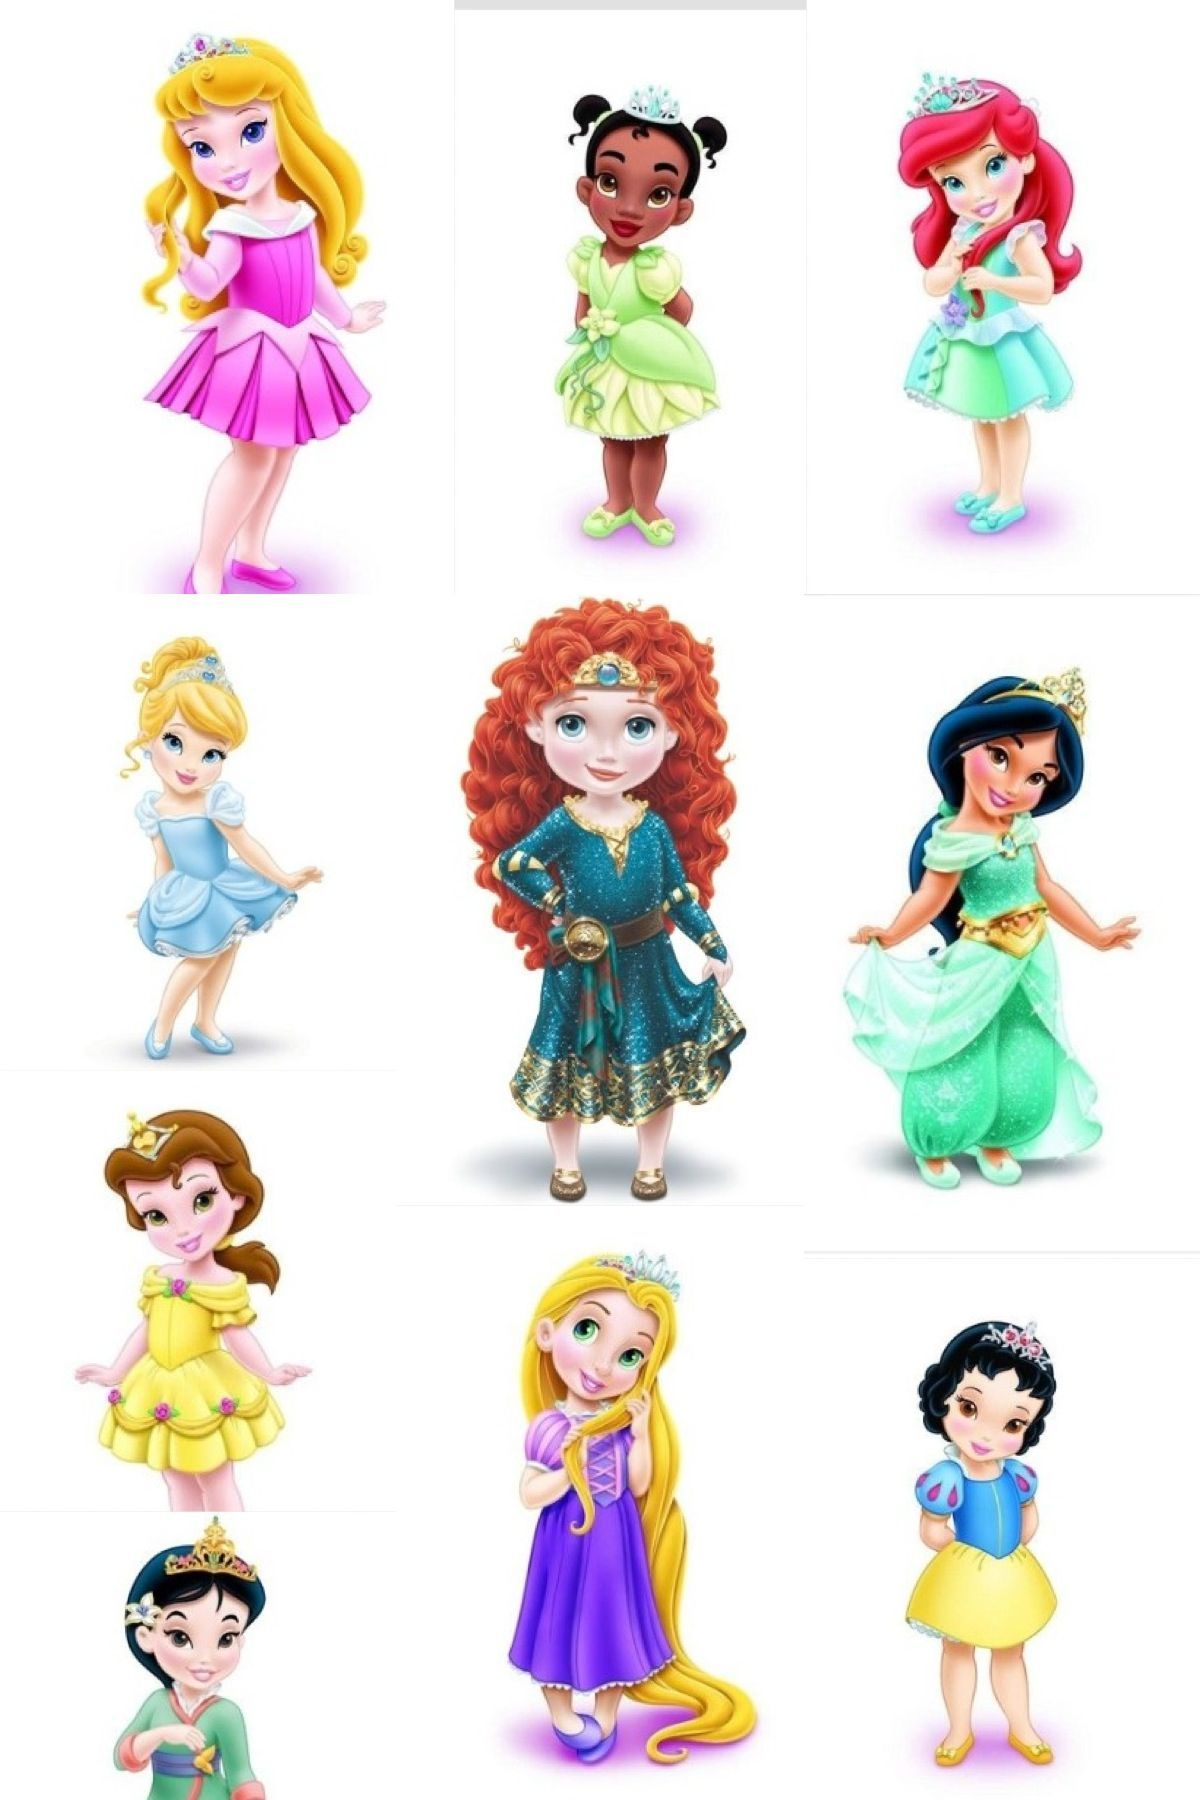 Pin By Danny Corrêa On Todo De Princesas Y Algo Más Disney Princess Toddler Disney Princess Cartoons Baby Disney Characters